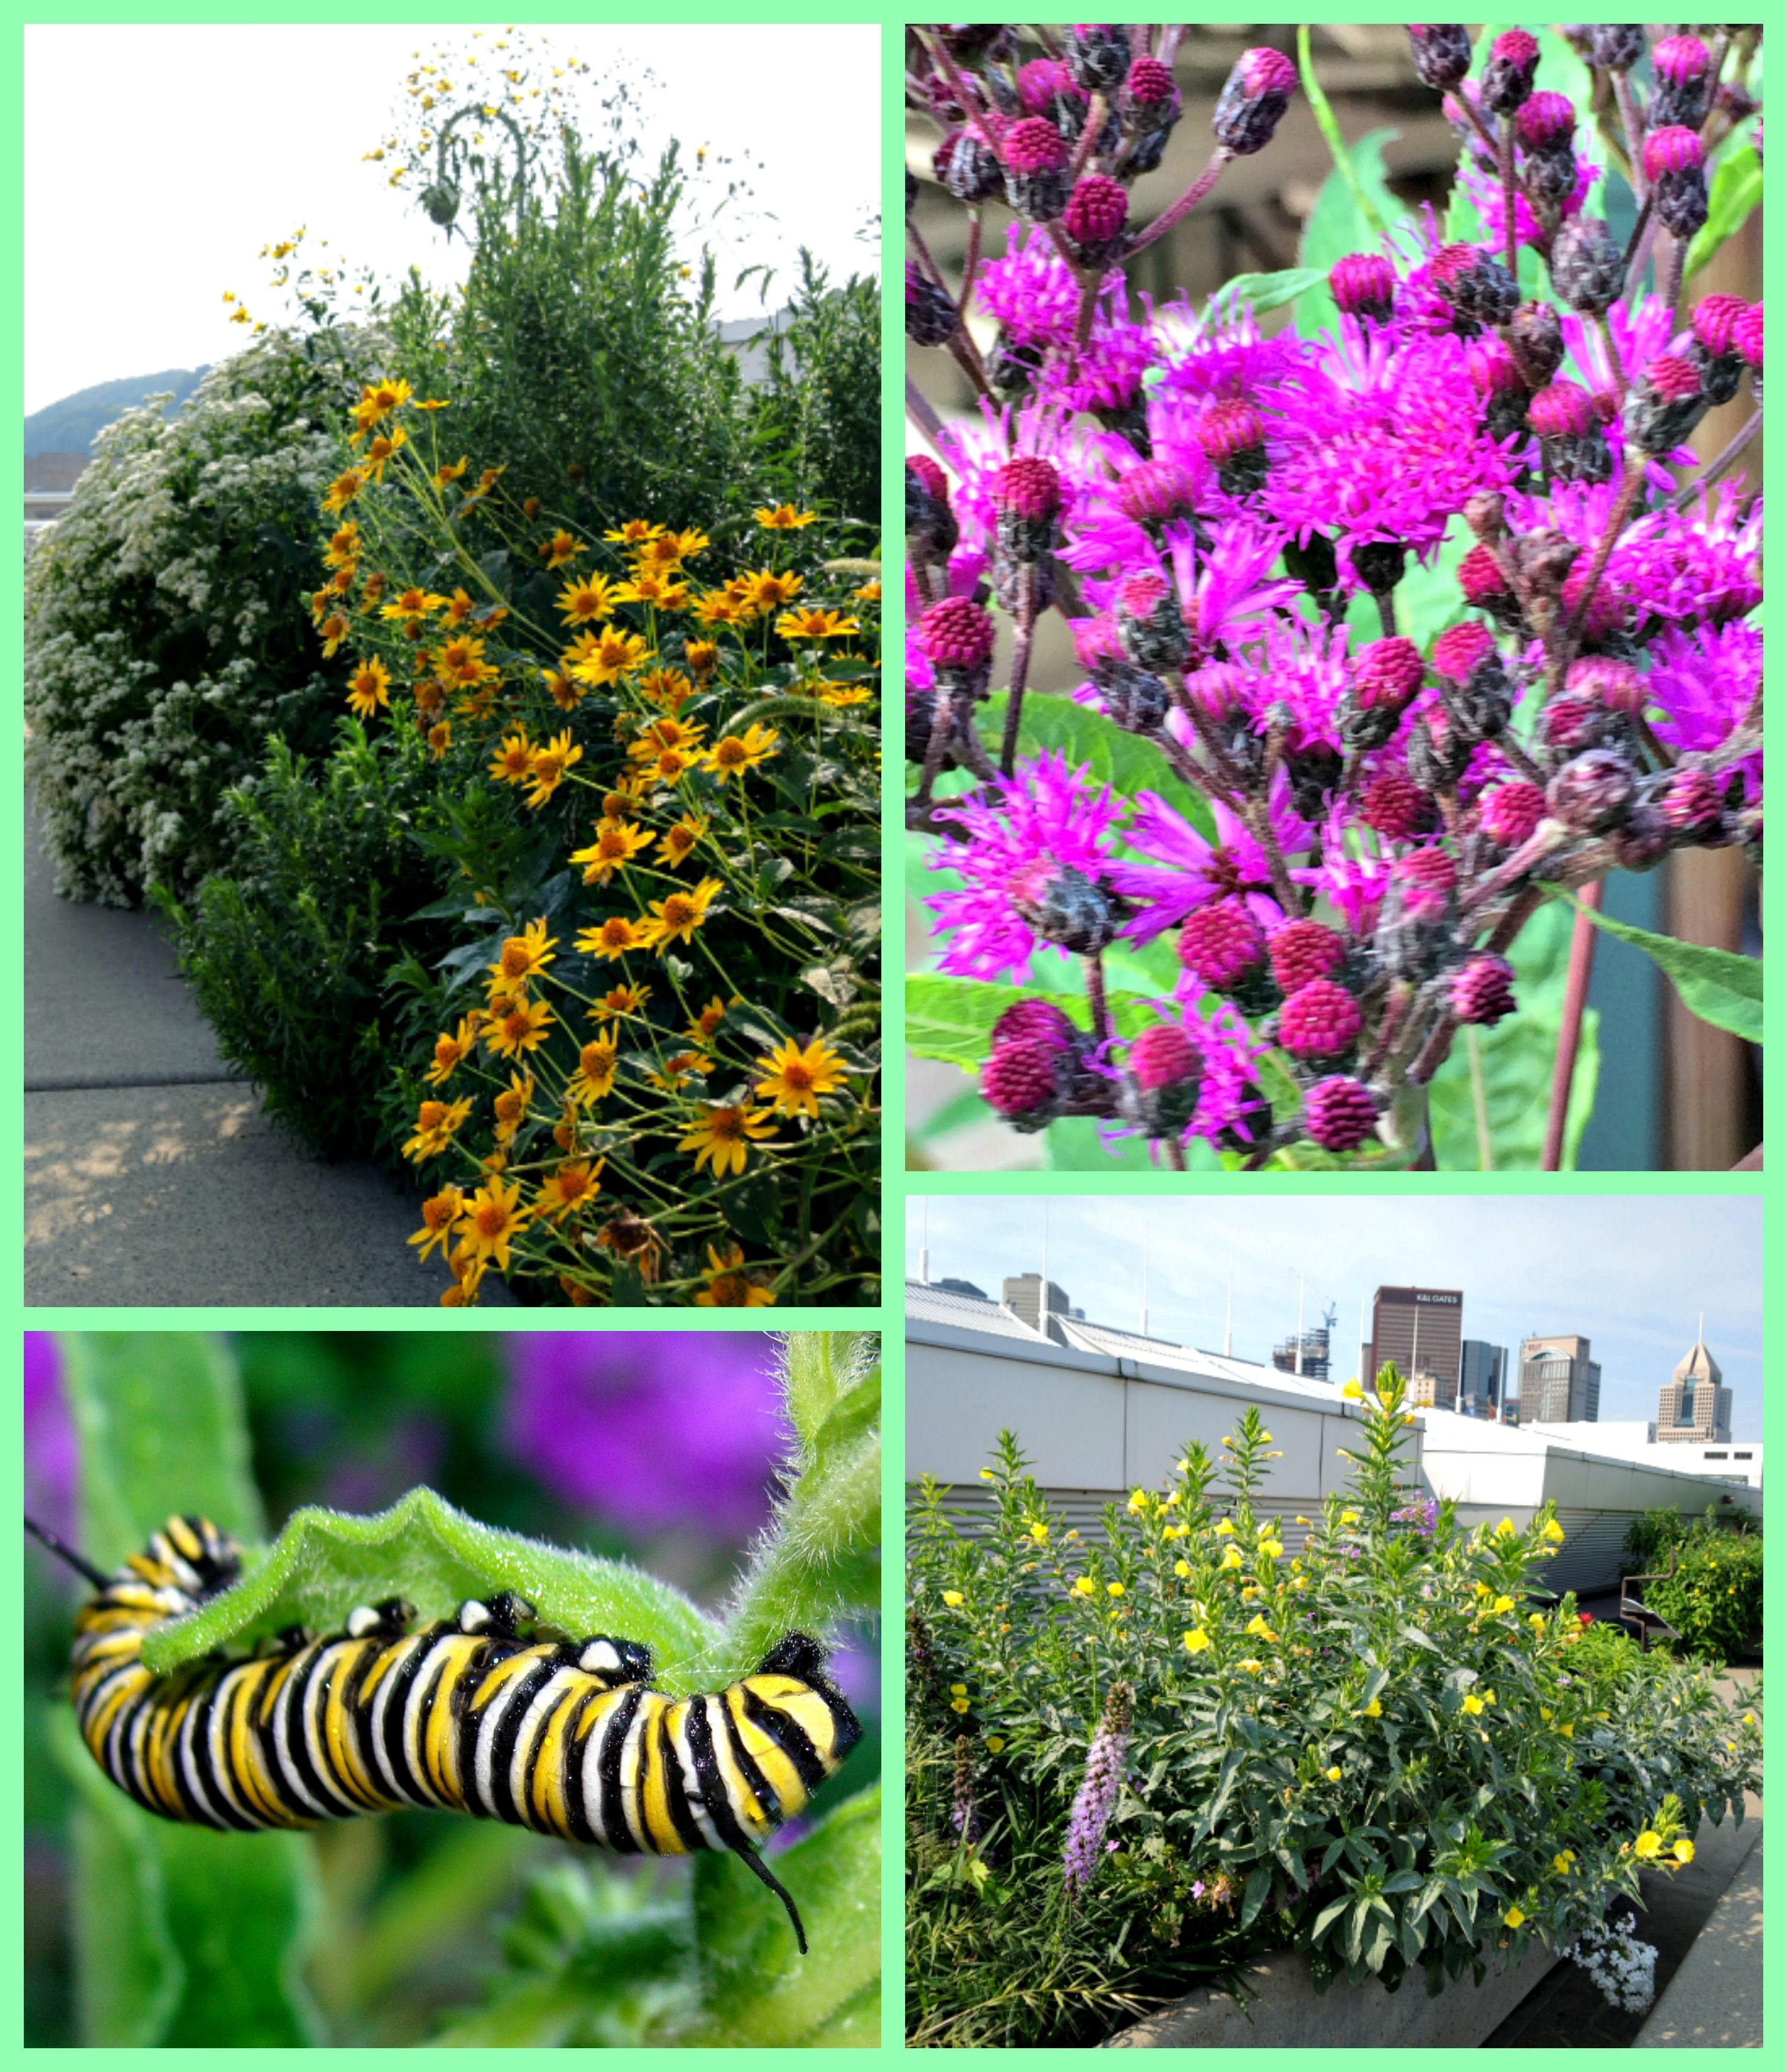 Monarch Waystation On The Roof Of The Conventiion Center In Pittsburgh,  Monarch Caterpillar Picture By Martin LaBar